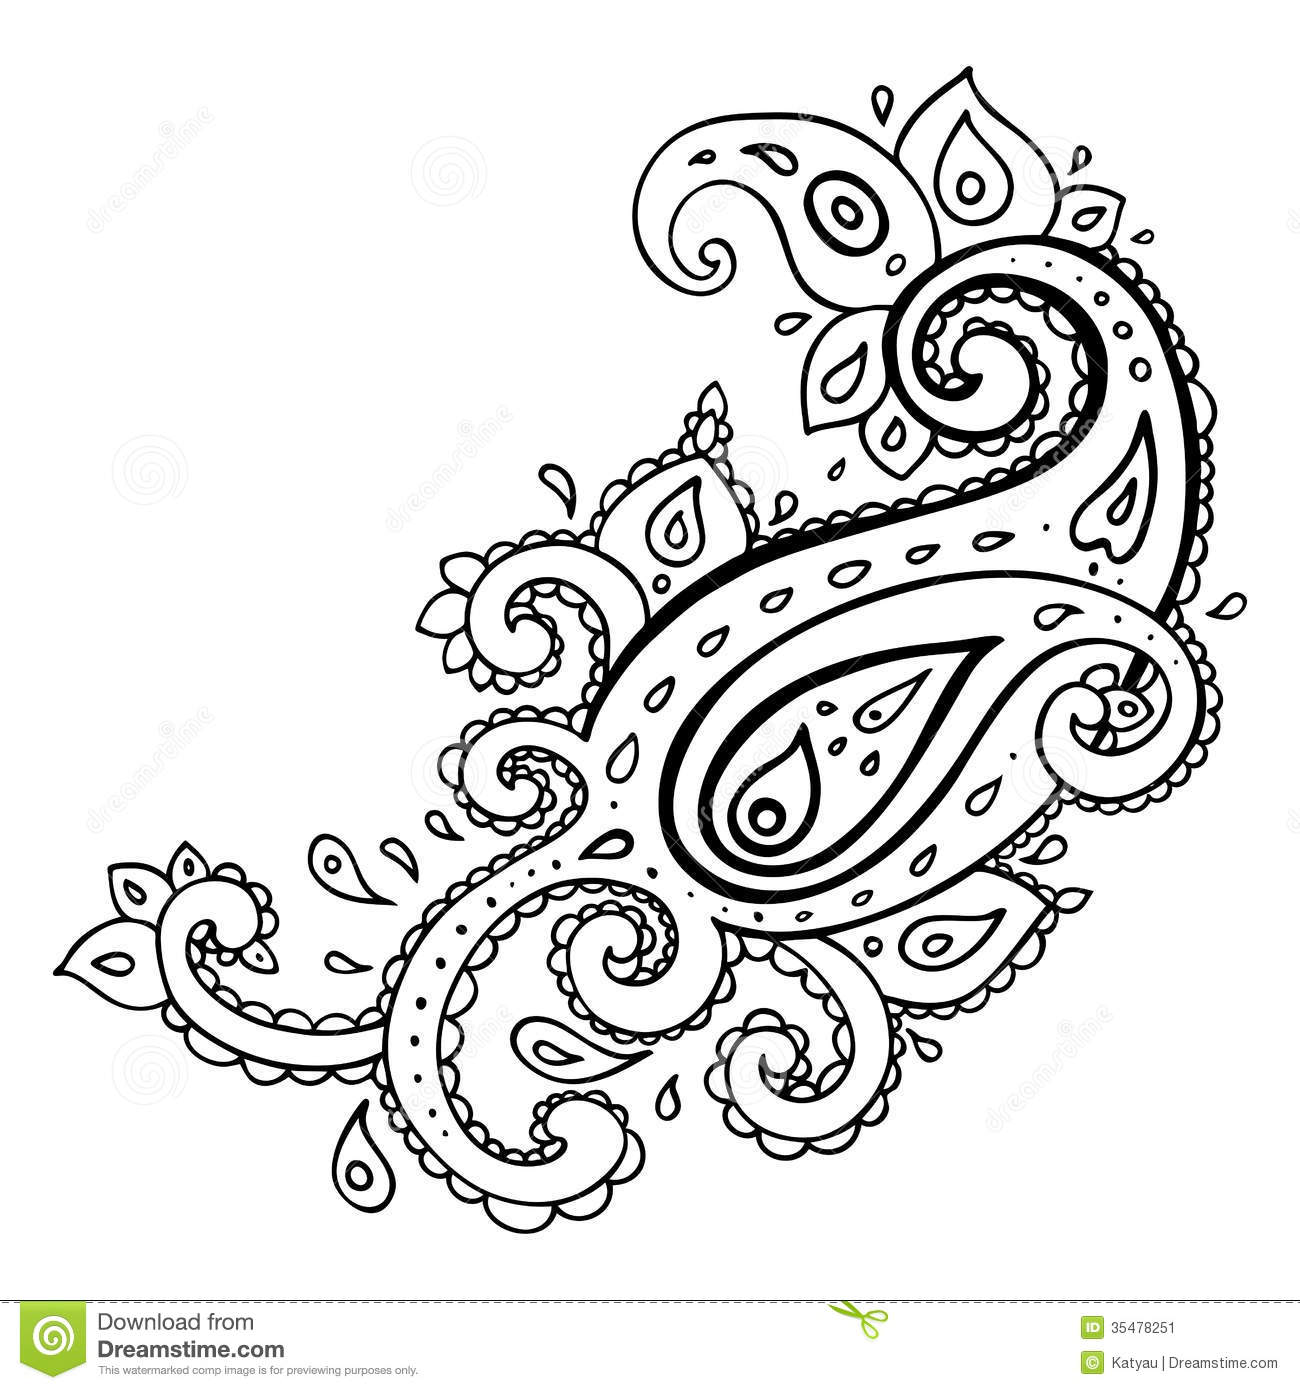 Bandana Outline Images - Reverse Search